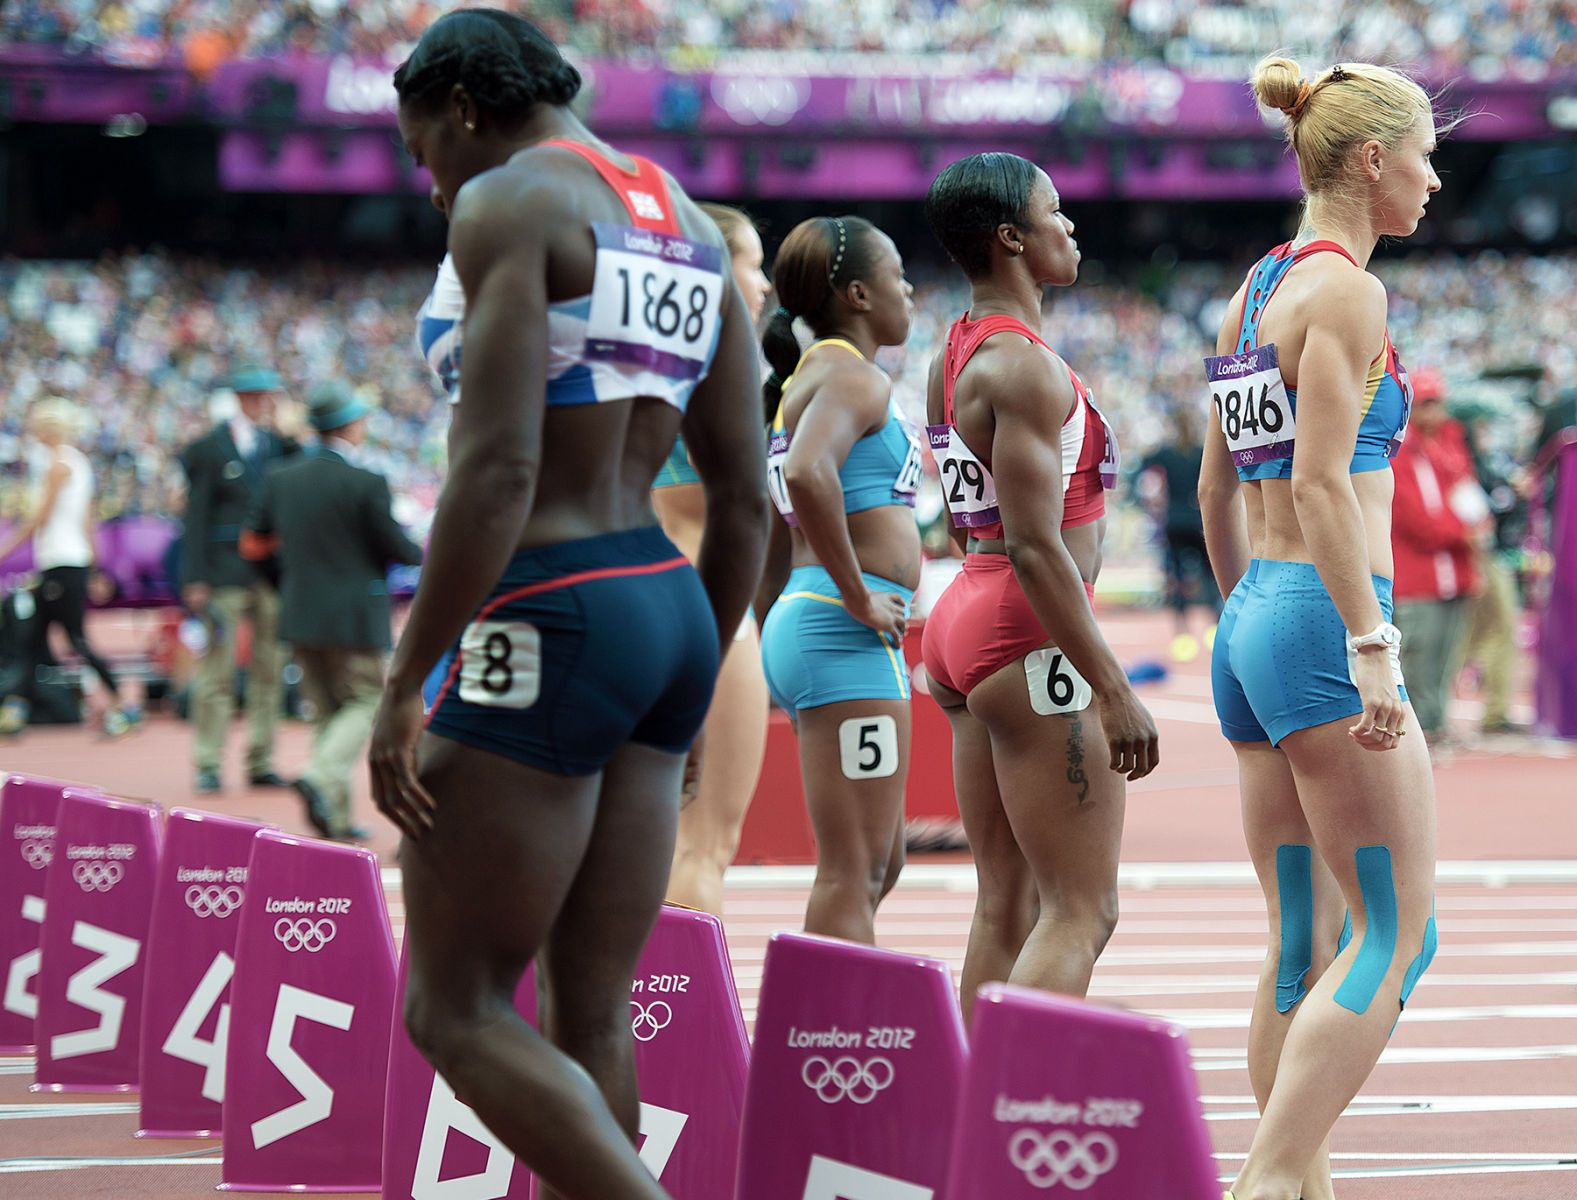 1london2012_carmelita_jeter_100m_start_track_and_field_image_jeff_cohen_photo_lb.jpg